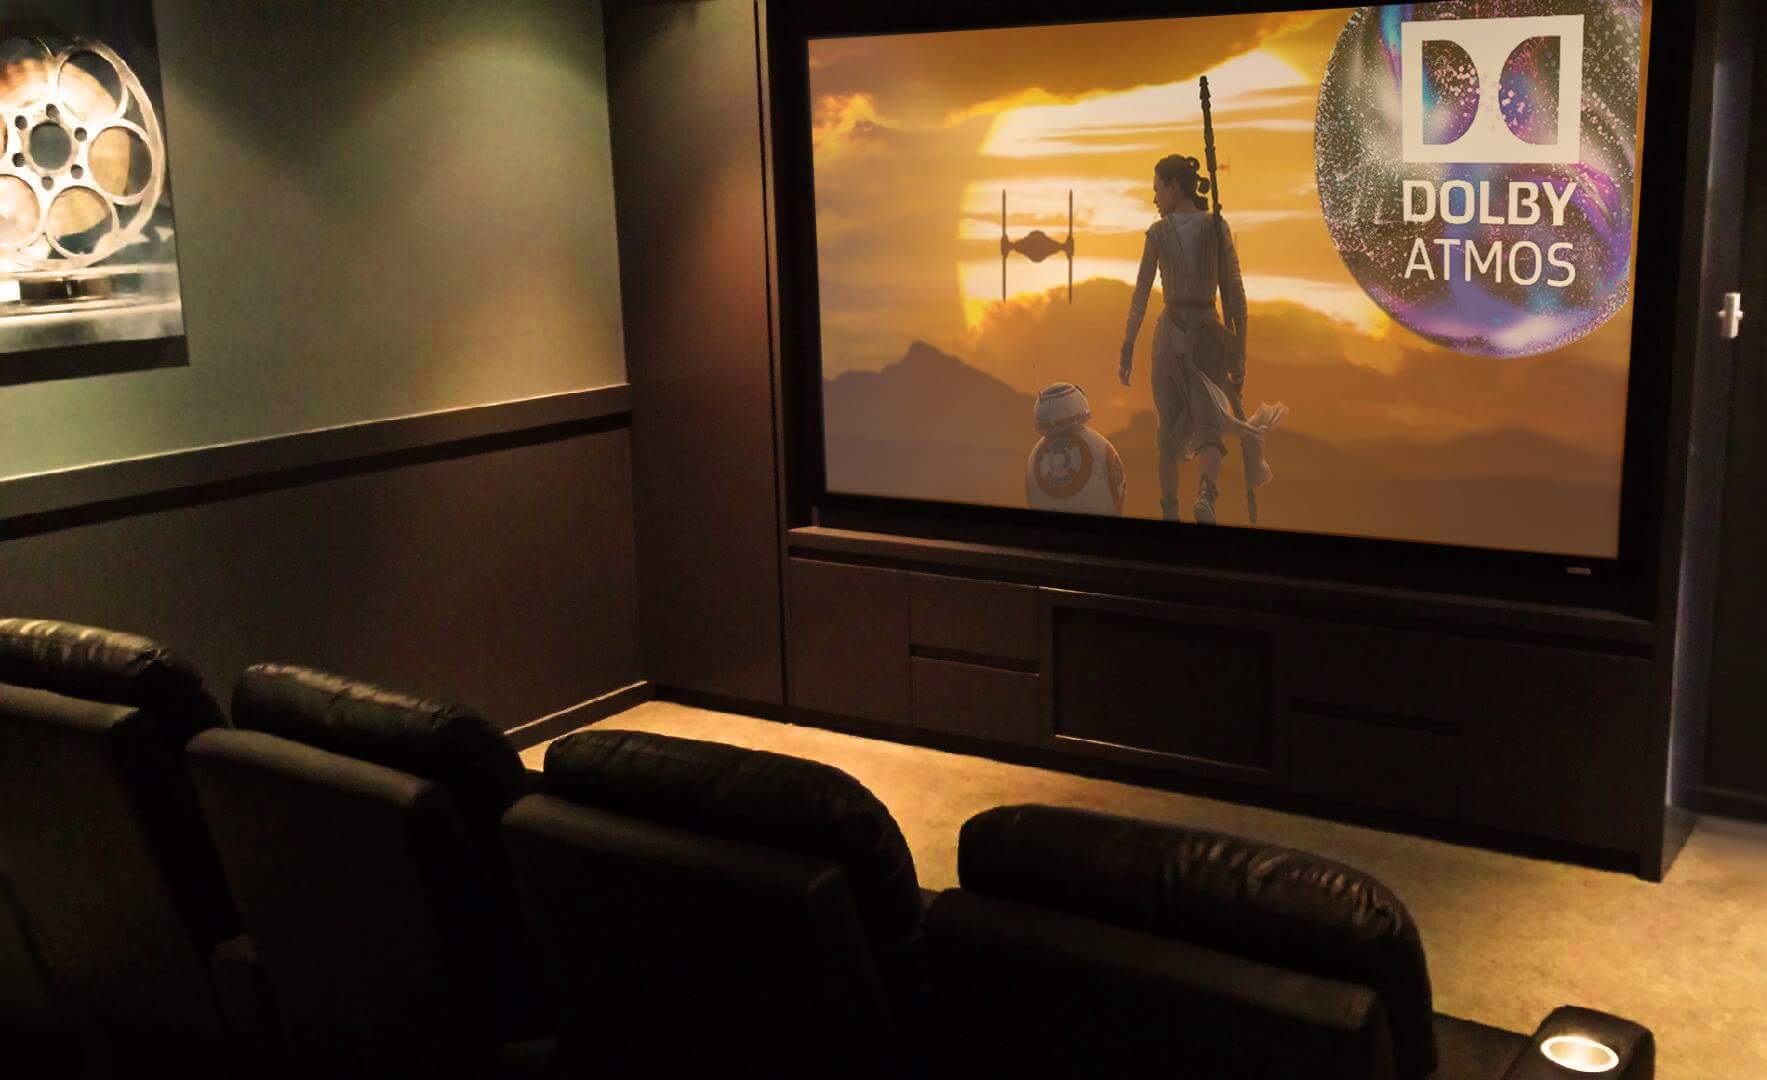 https://www.universalhometheatre.com.au/wp-content/uploads/2018/11/download-70-1.jpeg